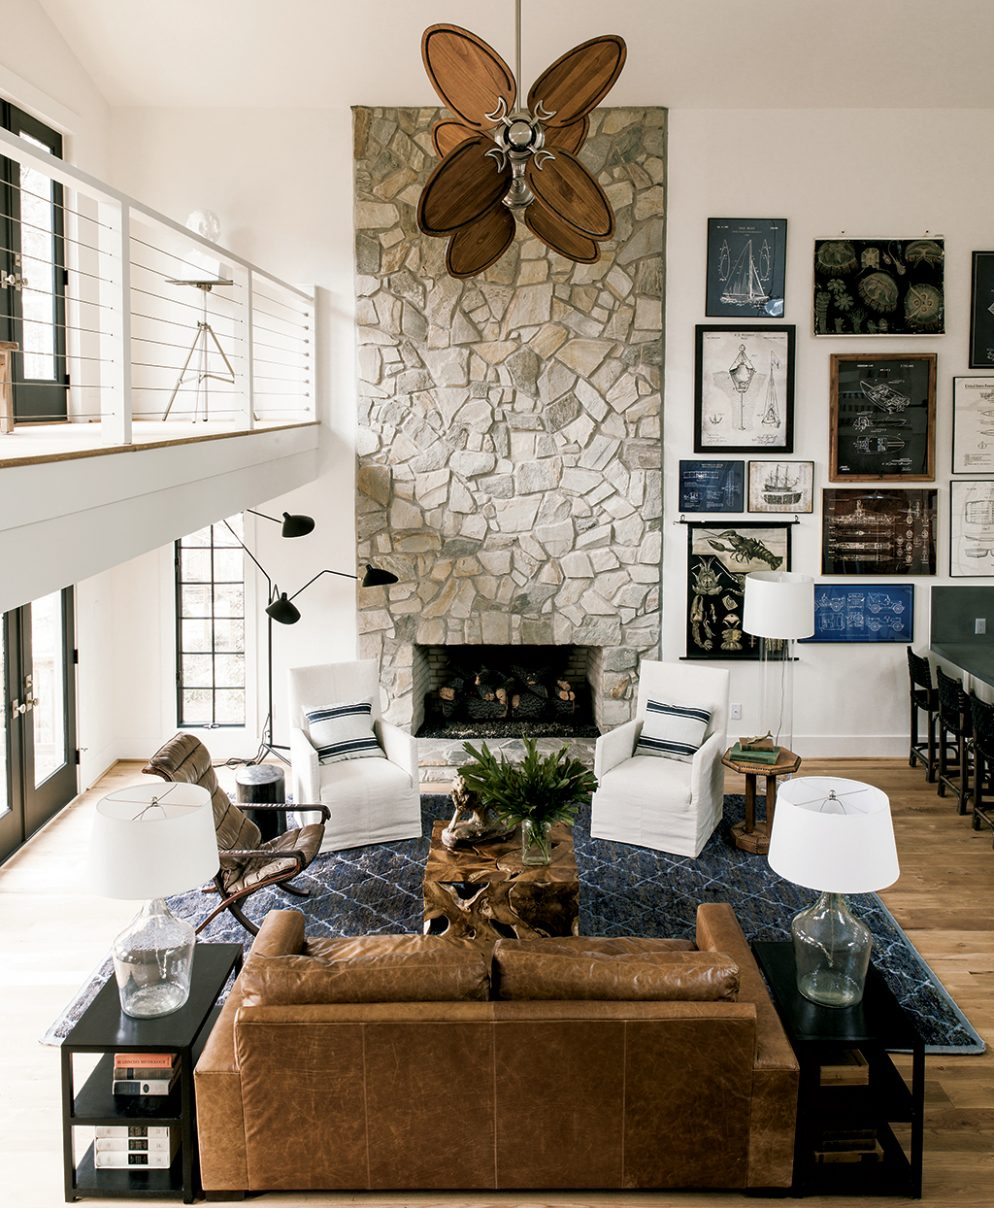 This Designer's Lake House Is the Retreat You've Always Dreamed Of